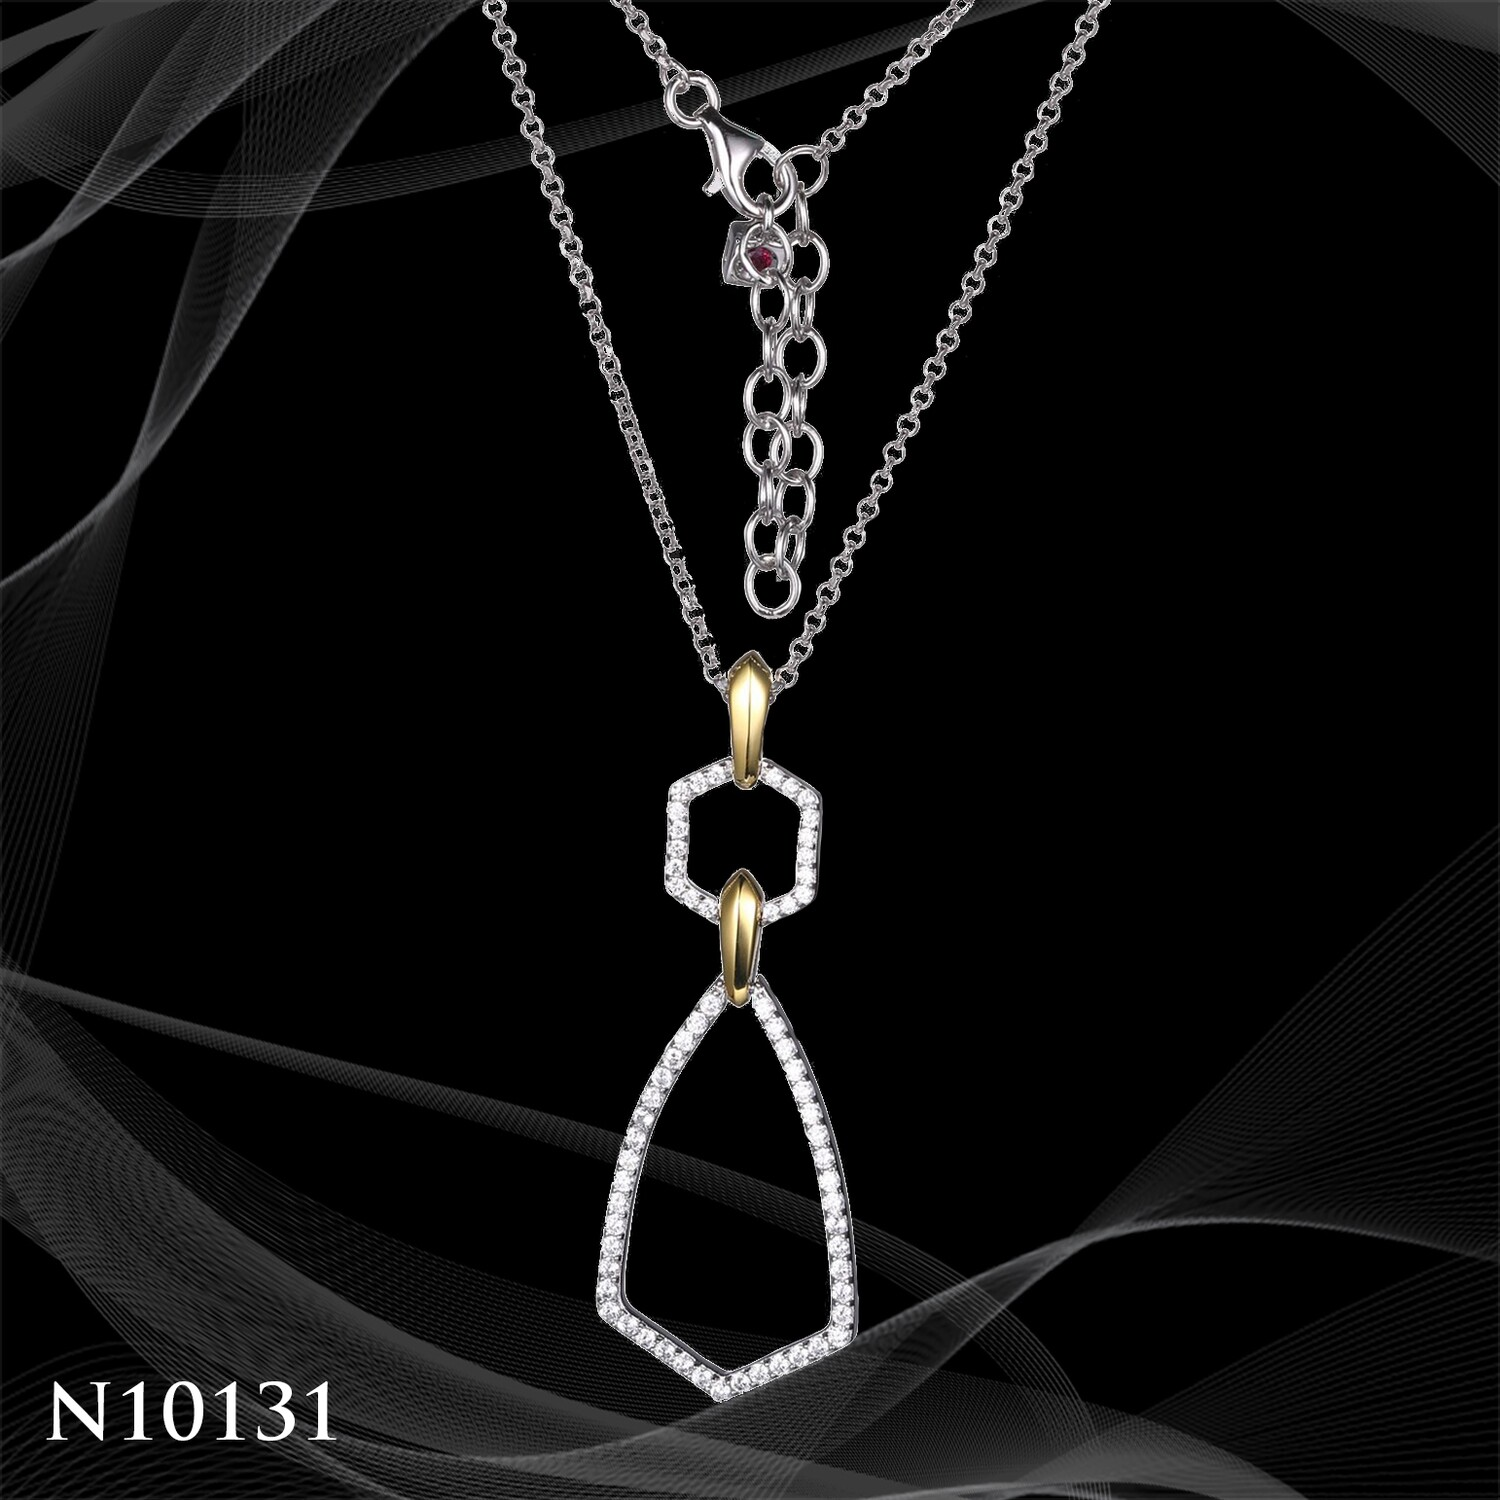 TWO STONE STERLING SILVER AND SIMULATED DIAMOND PENDANT